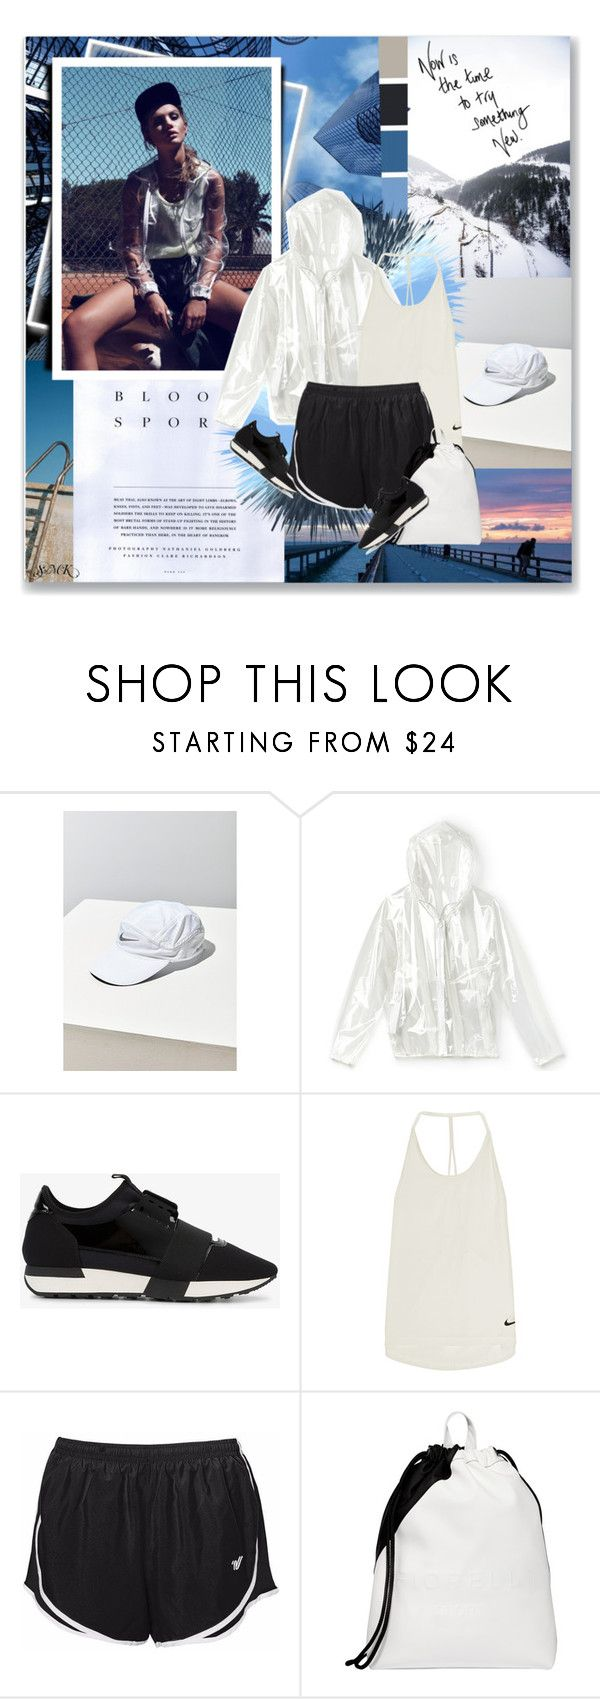 """""""Blood Sport."""" by lascaux ❤ liked on Polyvore featuring Zara TRF, NIKE, Lacoste, Balenciaga and Fiorelli"""